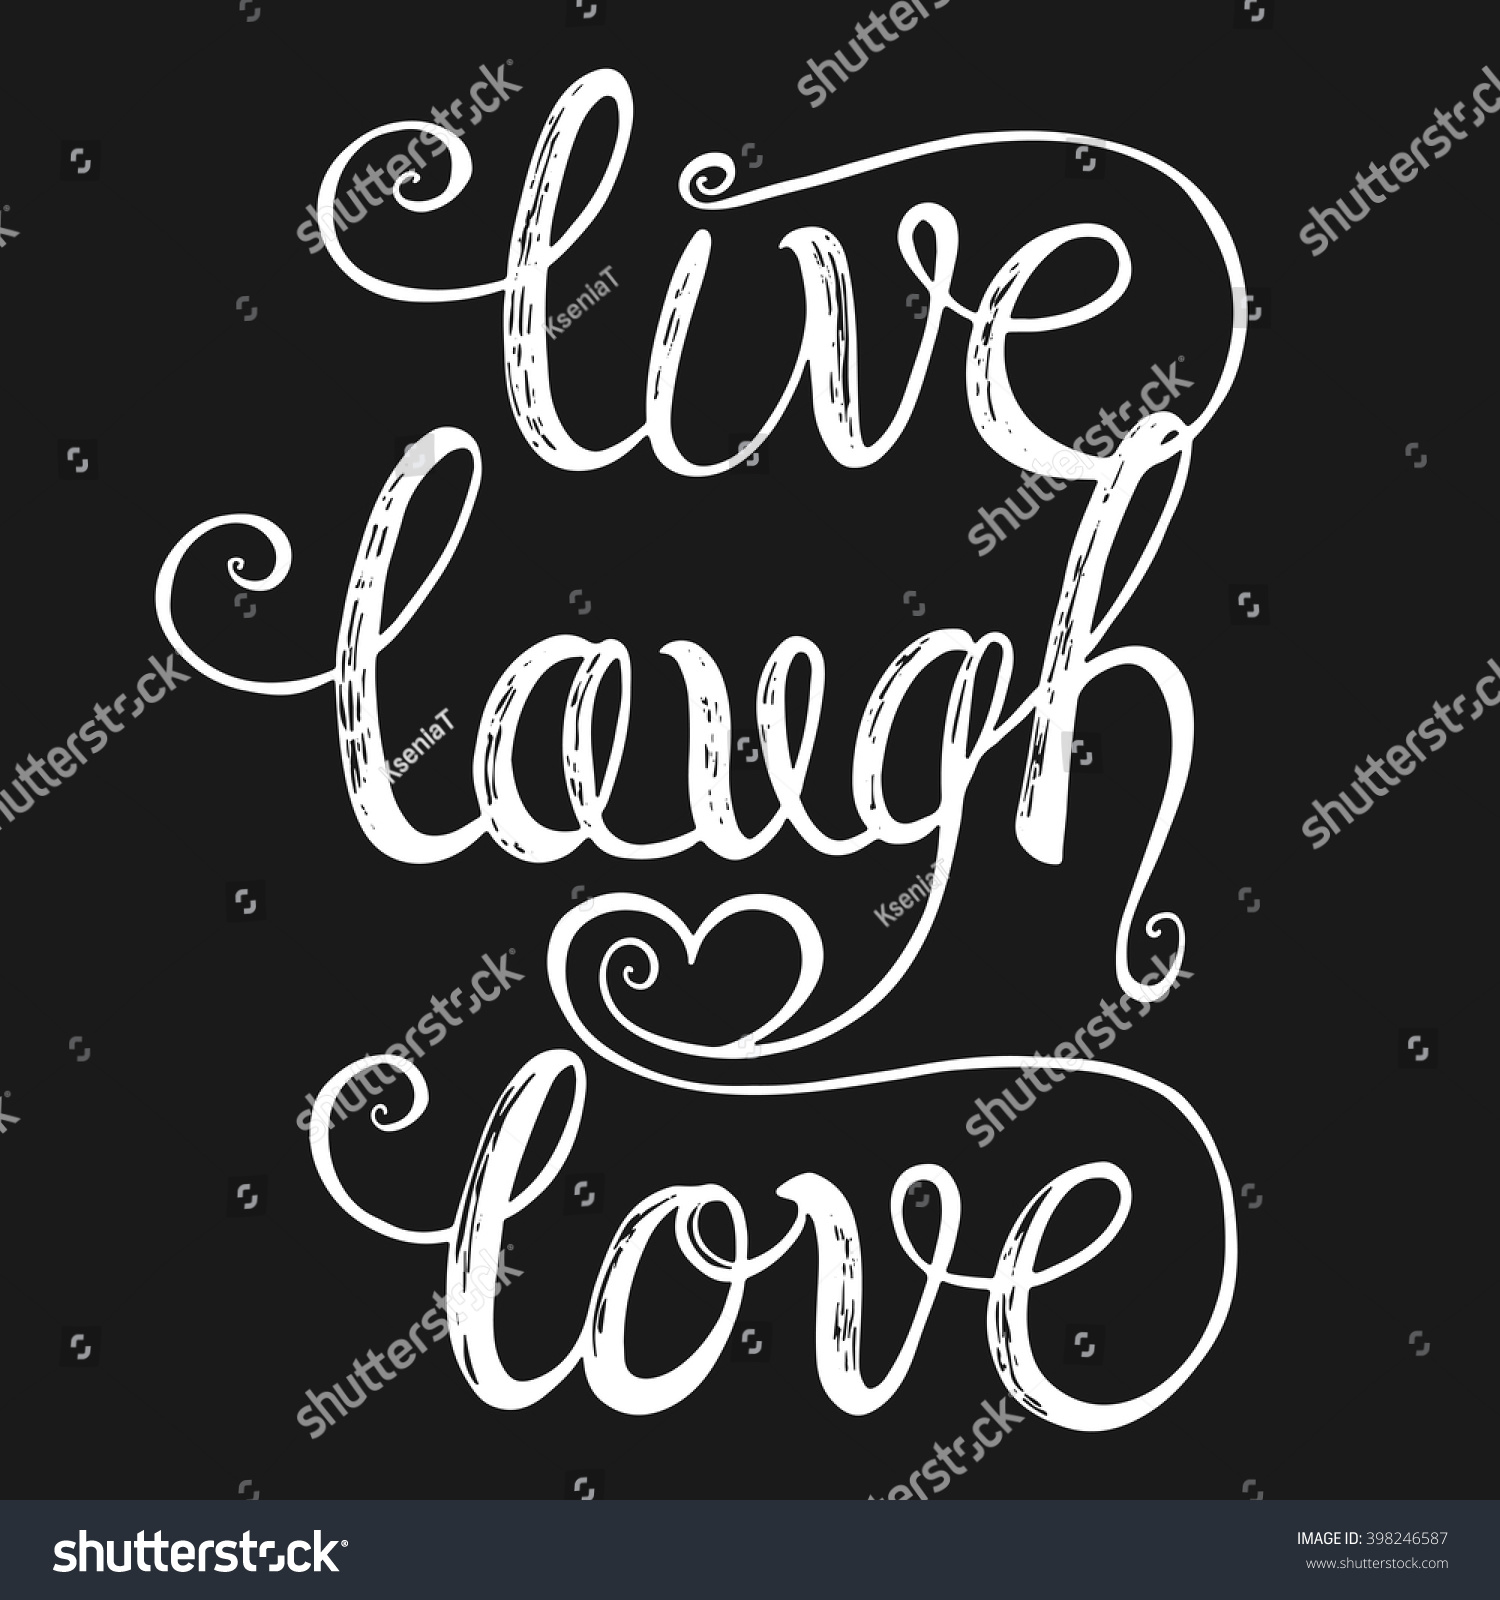 Live laugh love design greeting cards stock vector royalty free live laugh love design for greeting cards valentine day wedding posters m4hsunfo